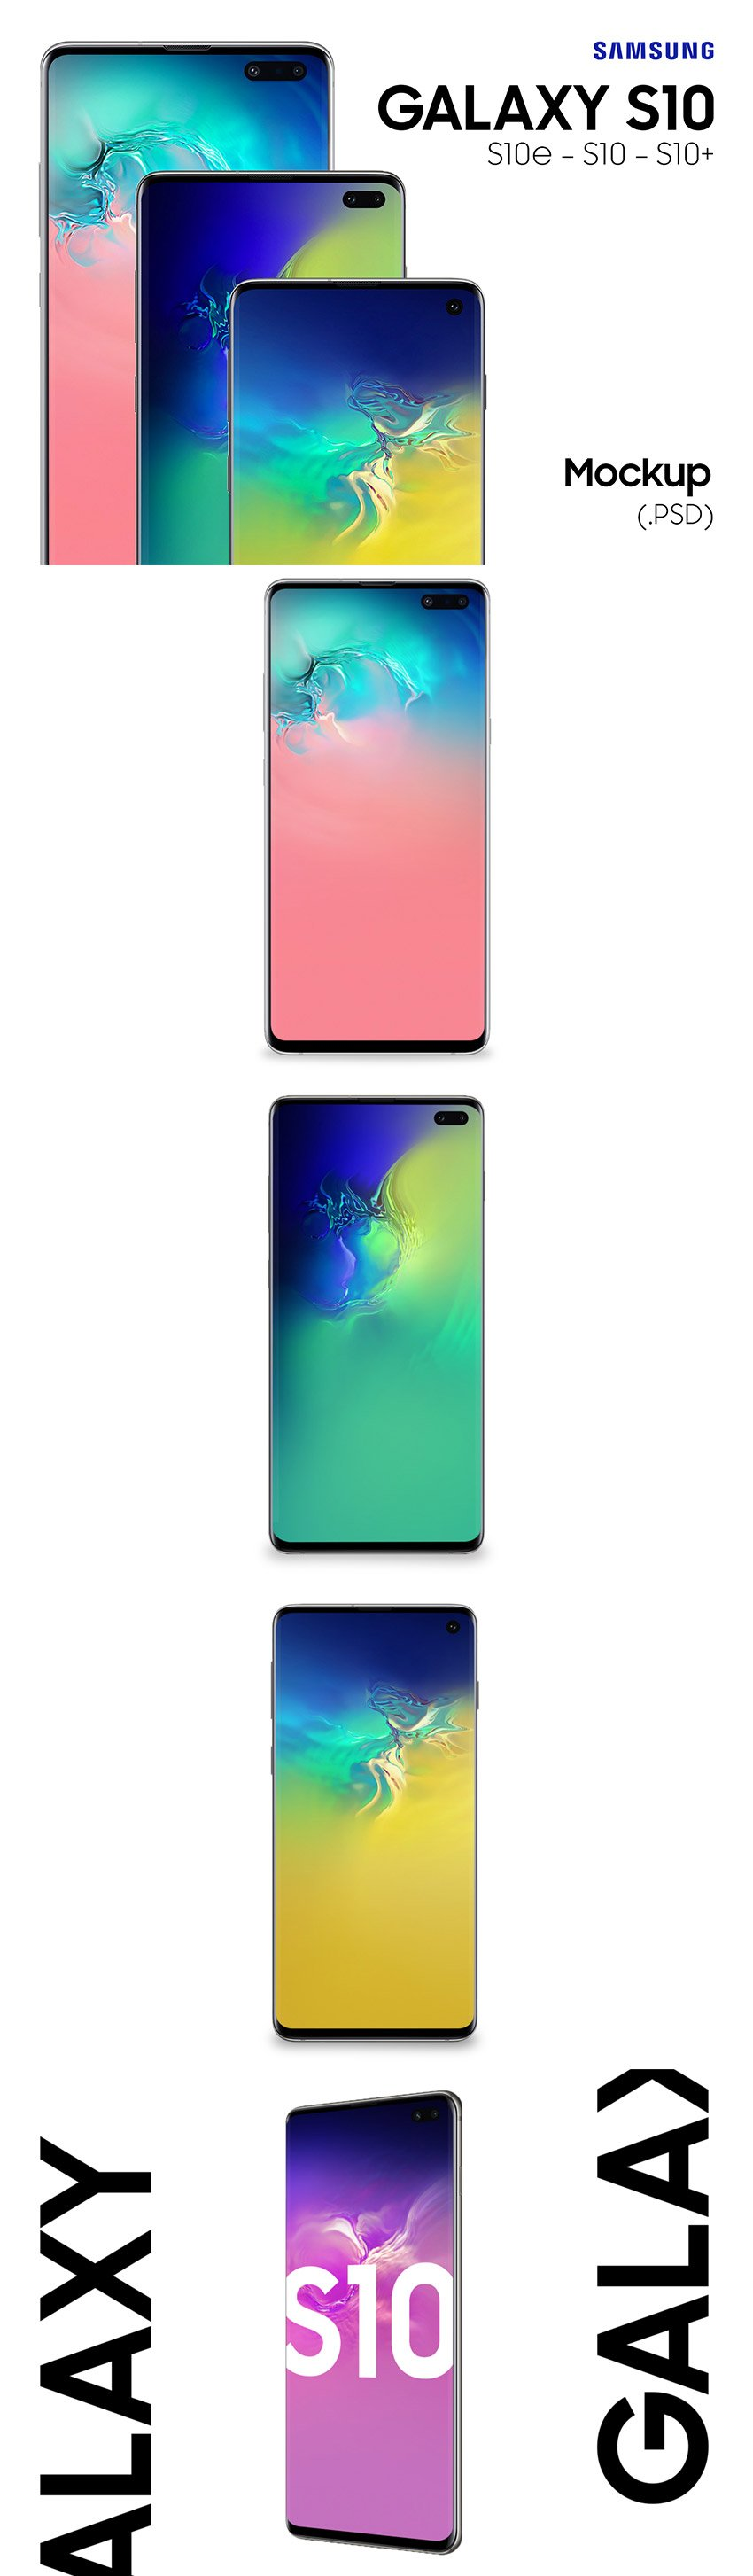 4 Galaxy S10 Free Mockups - Free Download